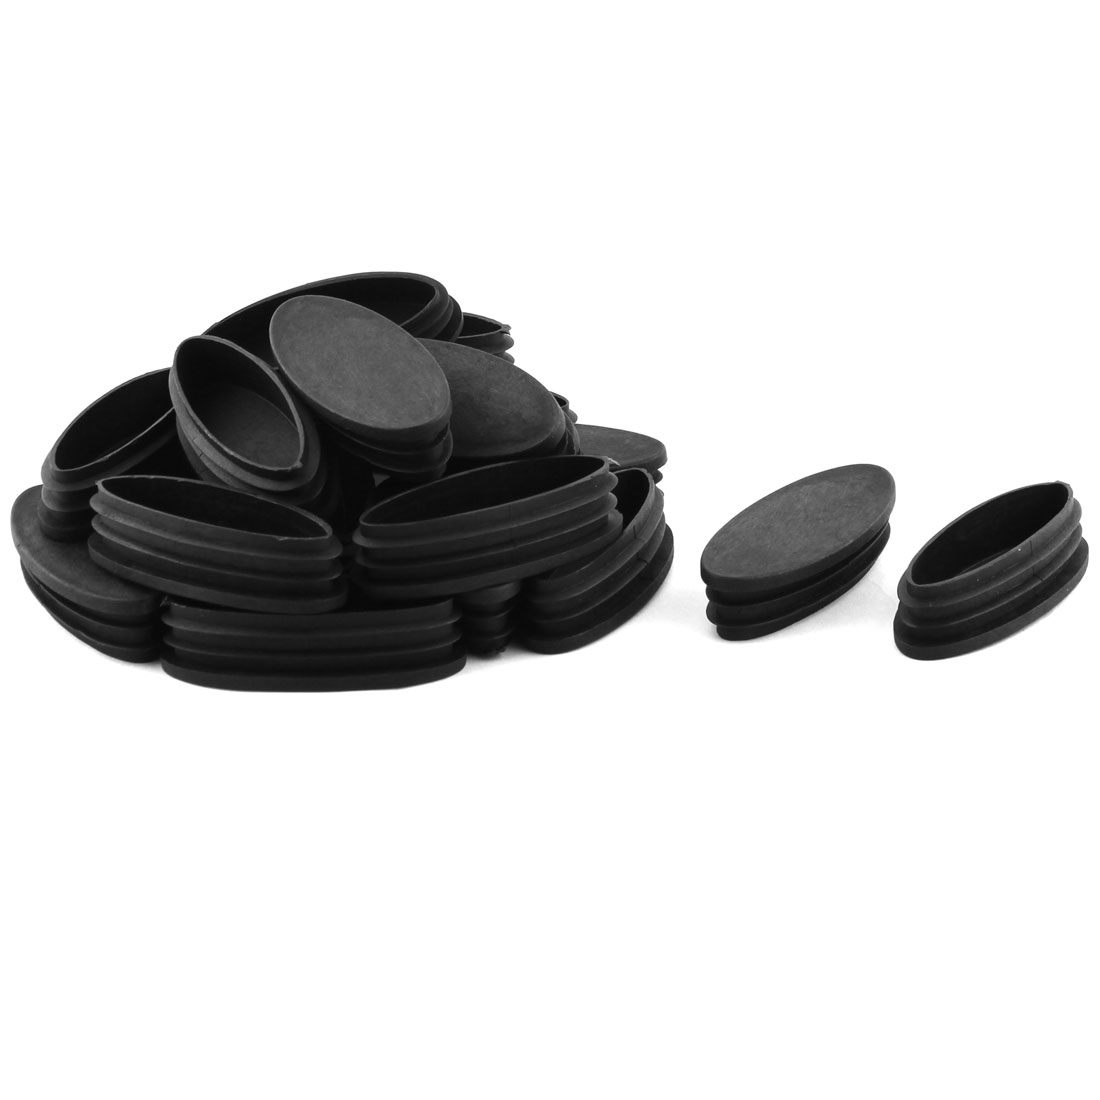 Furniture Table Chair Feet Plastic Oval Tube Insert Cap Black 80 x 35mm 20 Pcs